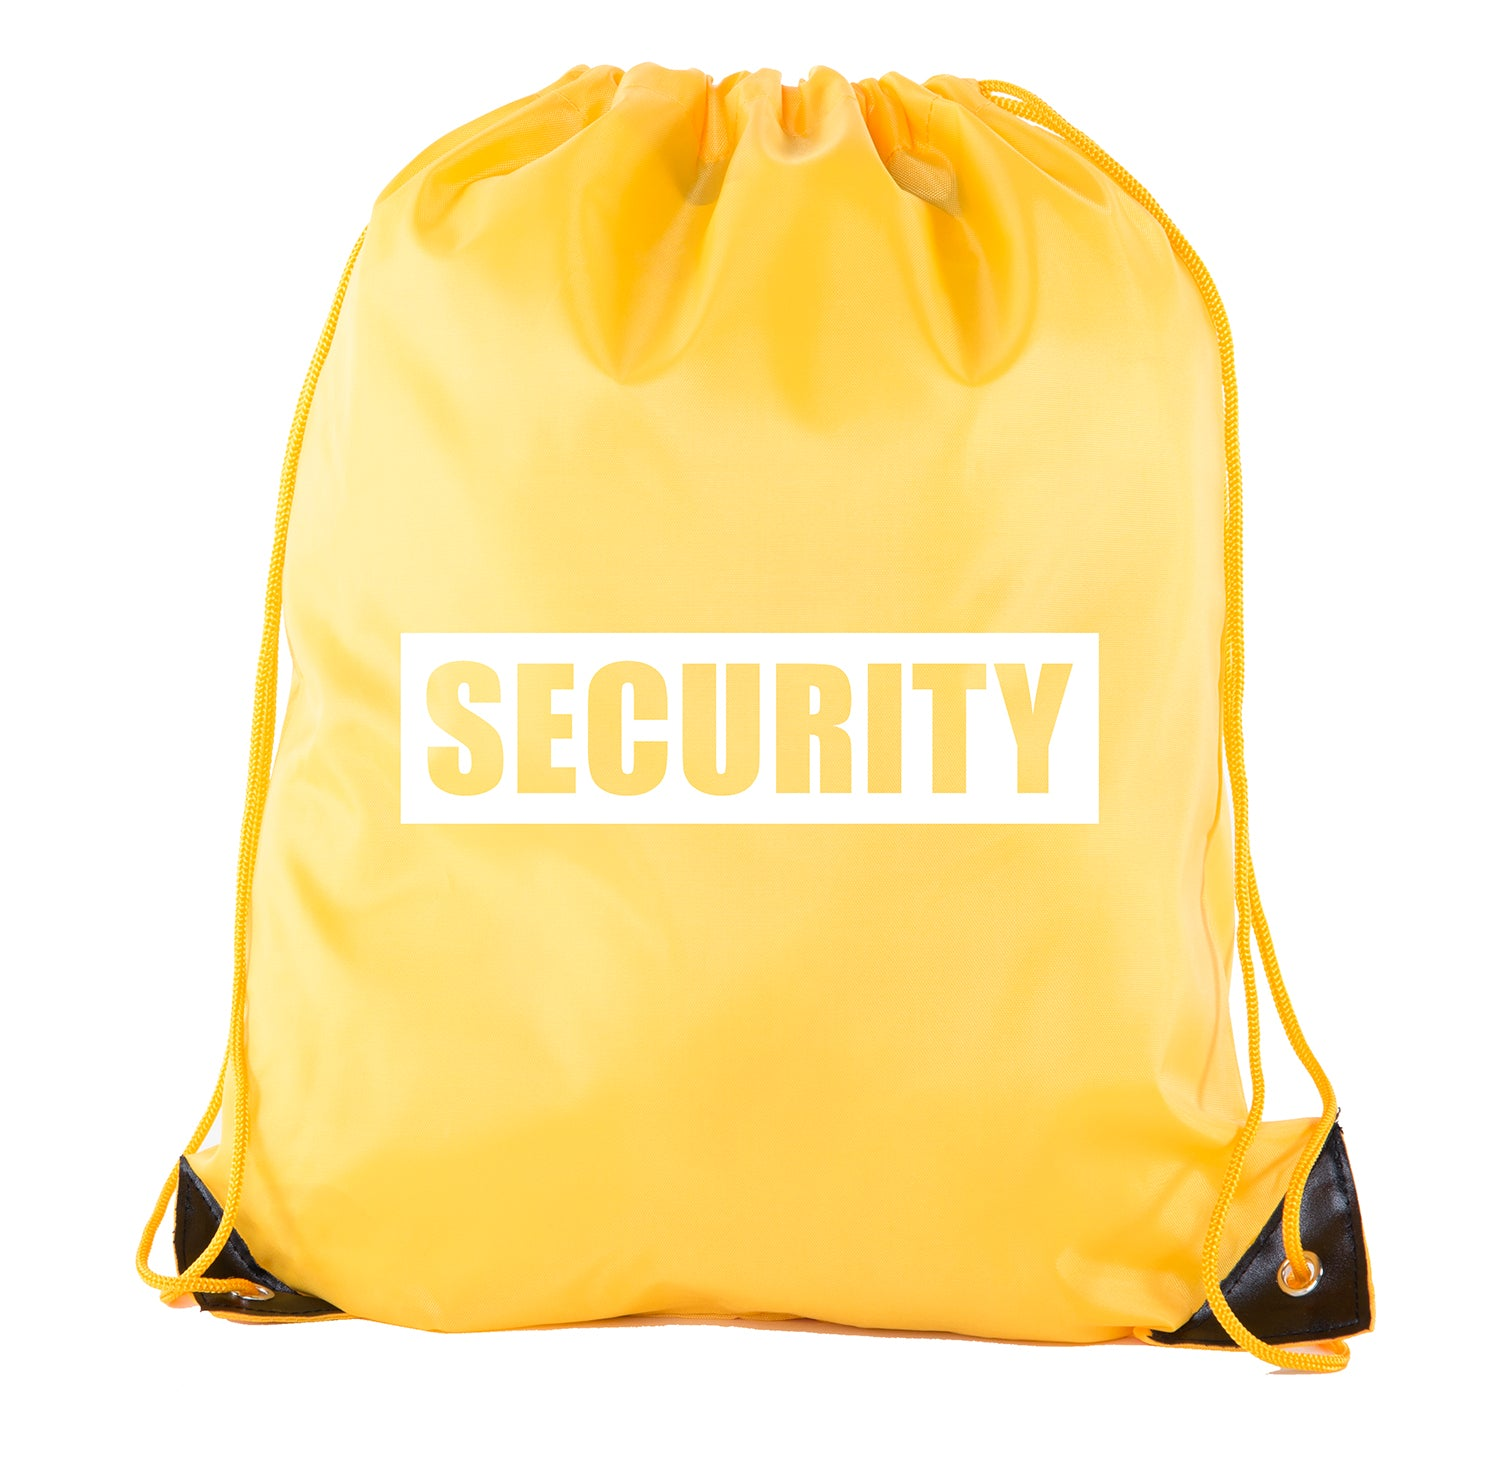 Accessory - Security Guard Bag, Event Staff Emergency Backpack For Concerts Business & Clubs - Security Bold